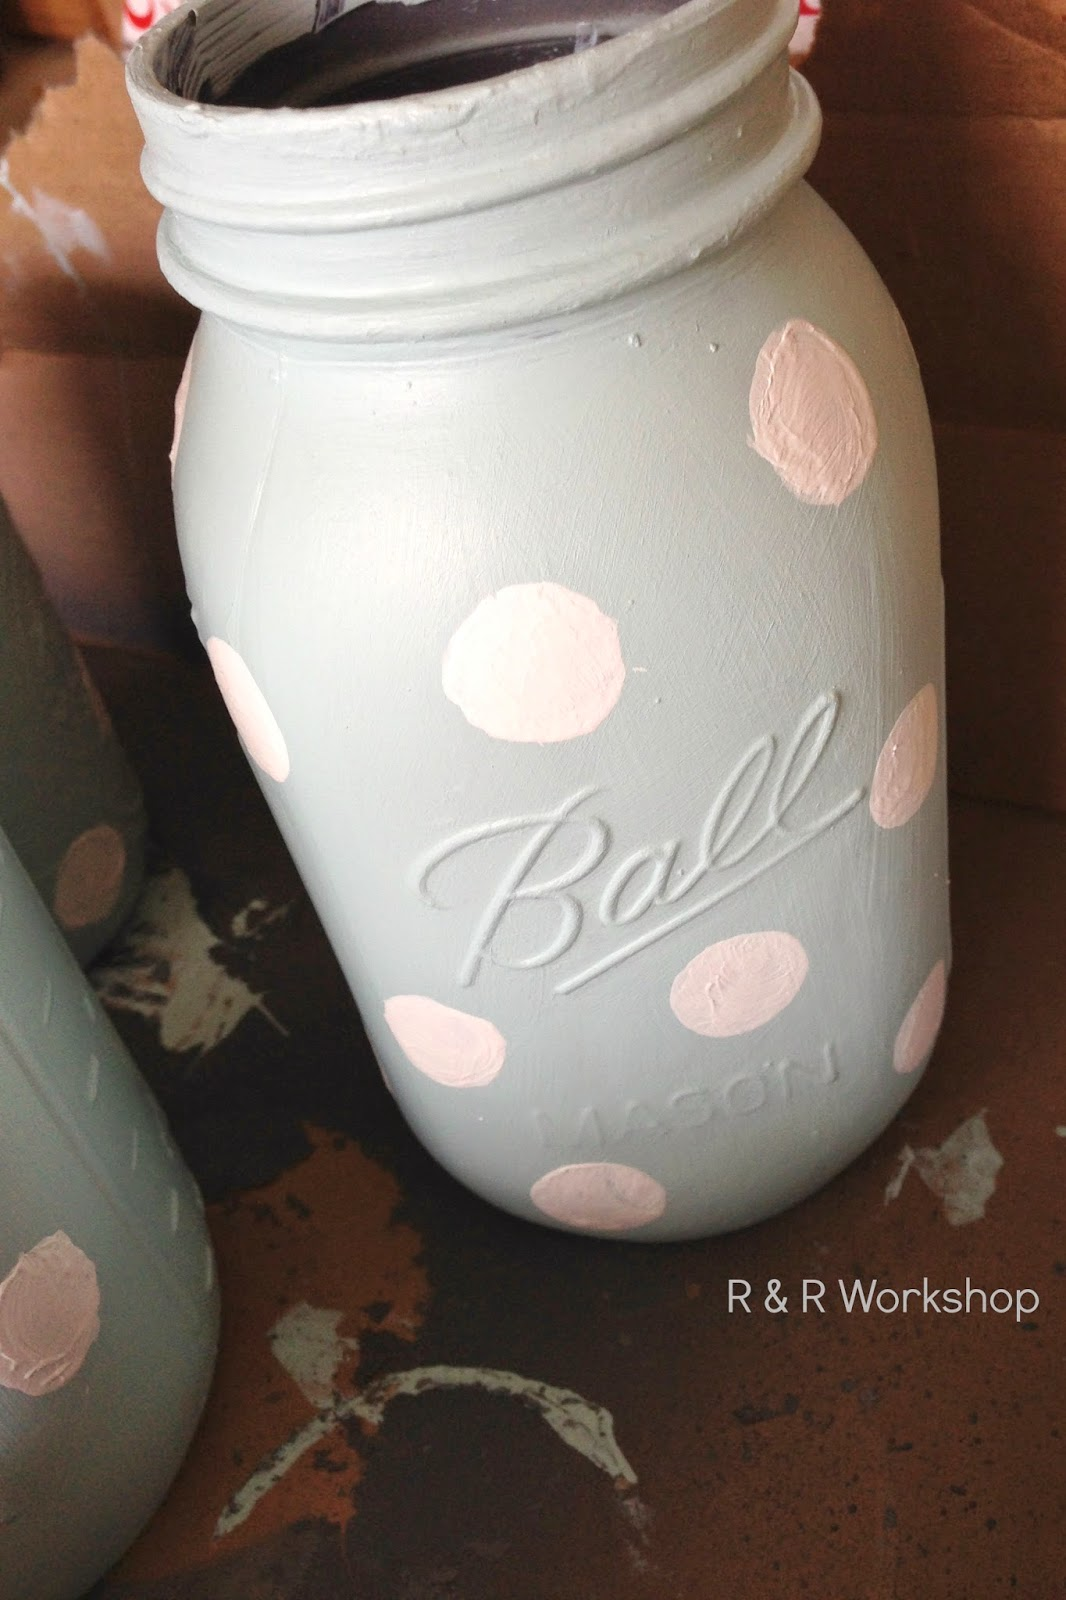 R  R WorkshopDIY Polka Dot Jars